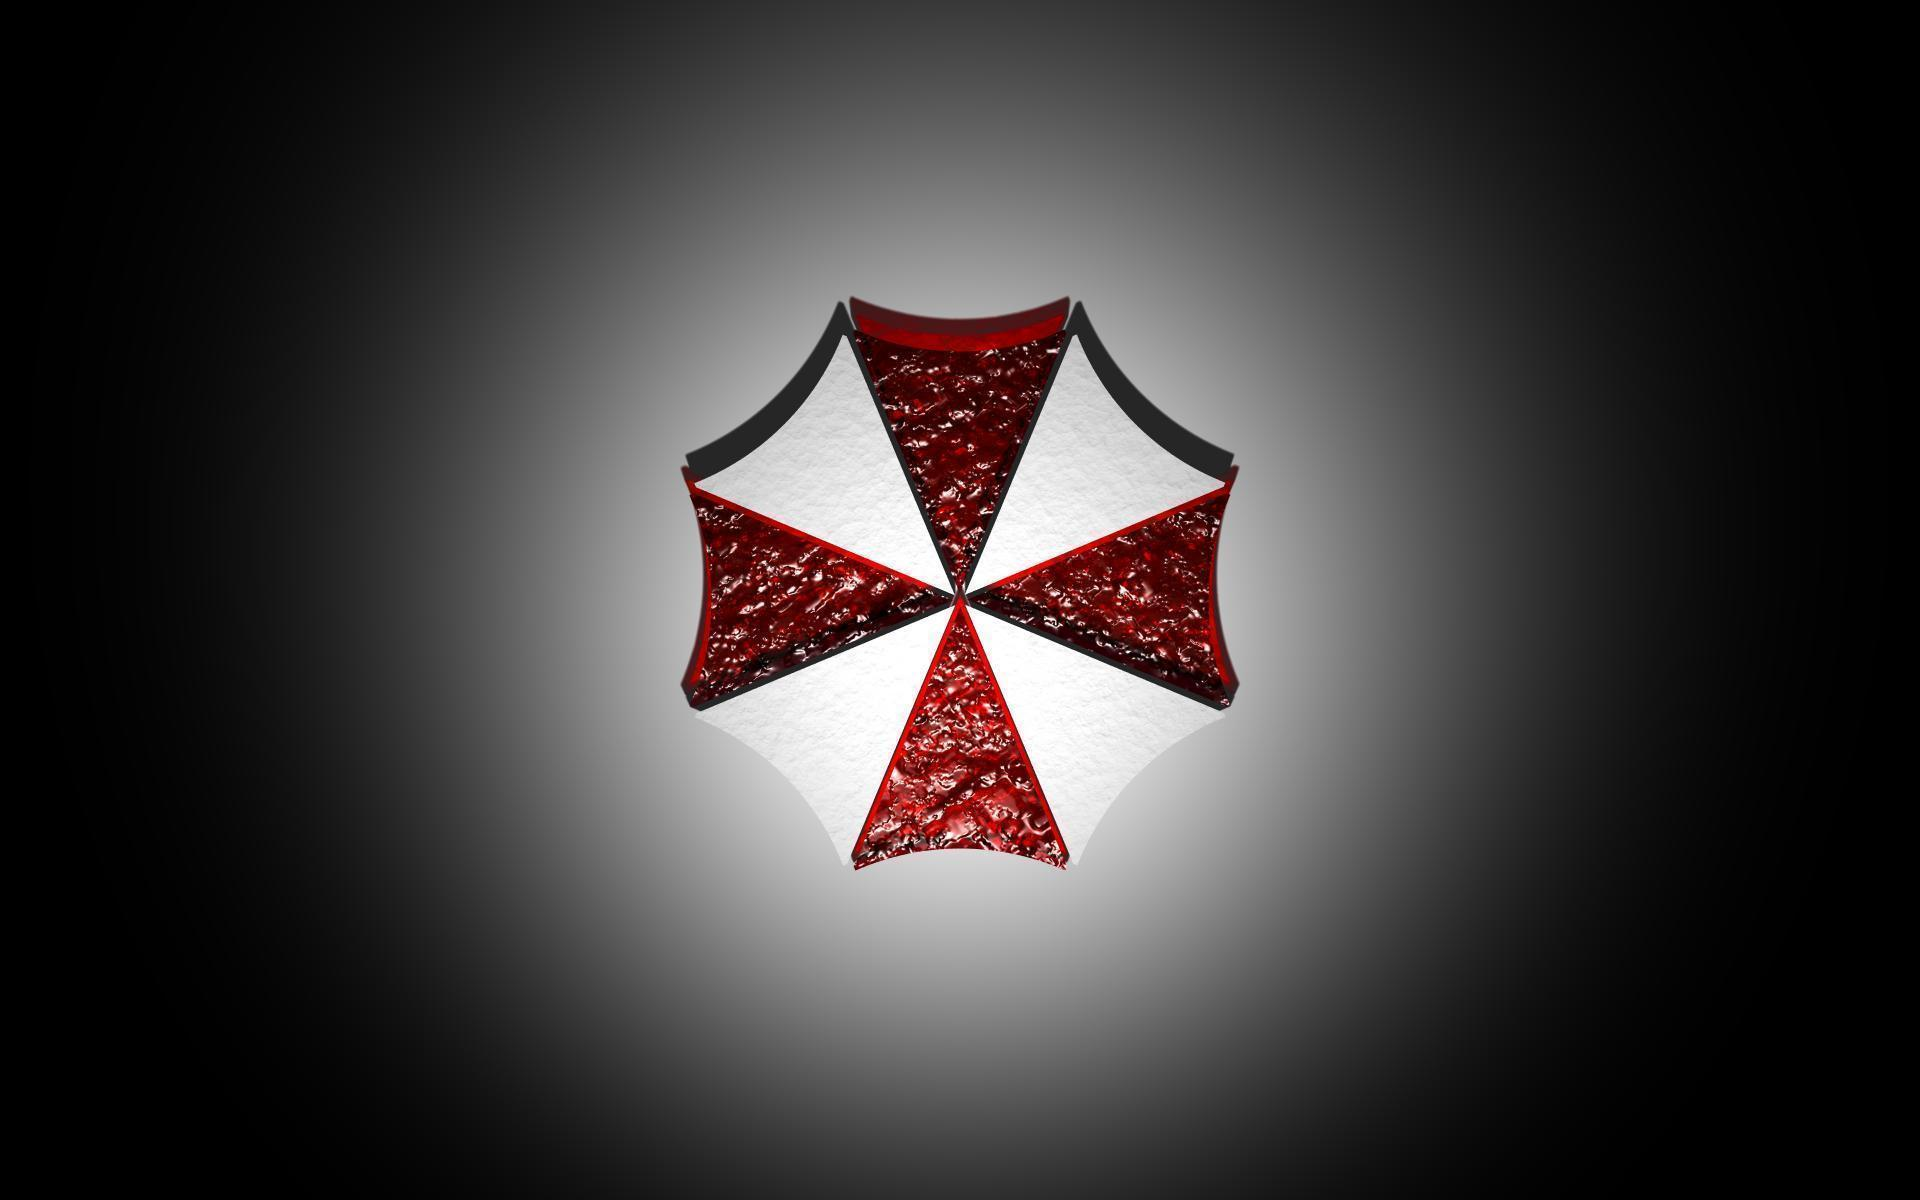 Umbrella Corporation Computer Theme 32160 Wallpaper - Res ...